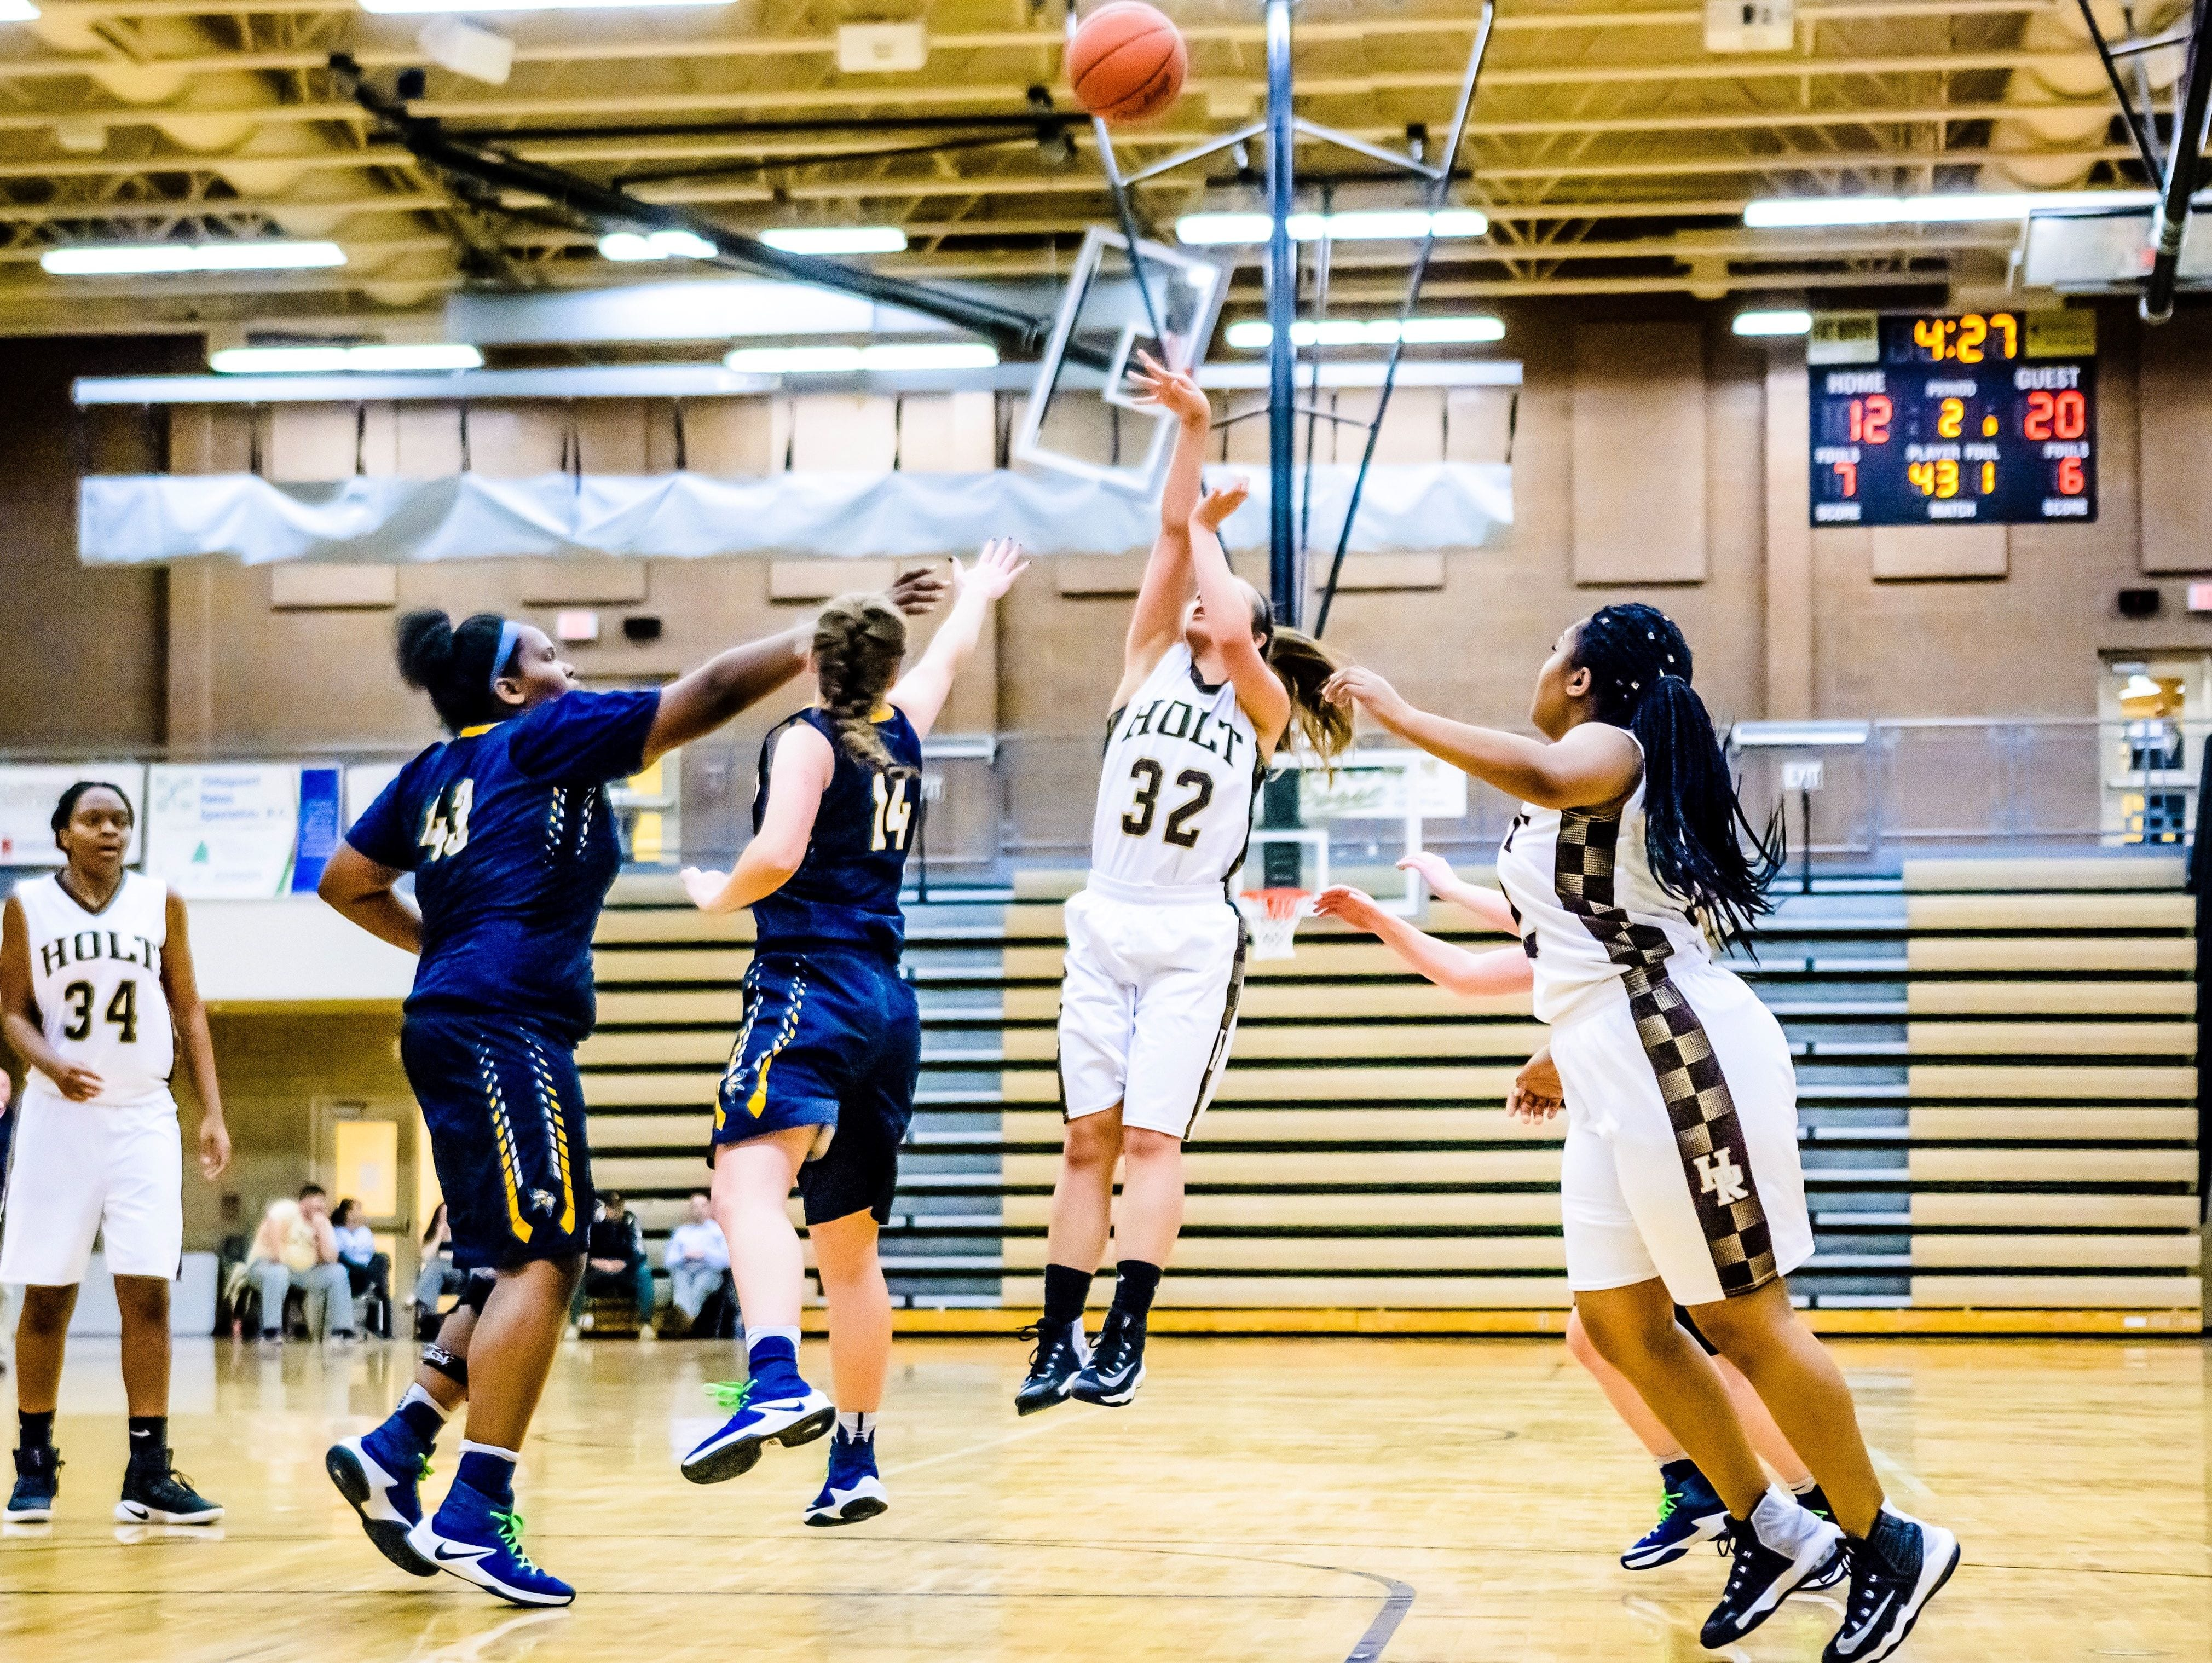 Alliyiah Demmers ,32, of Holt knocks down a 3-point shot over Haslett defenders during their game Tuesday February 7, 2017.